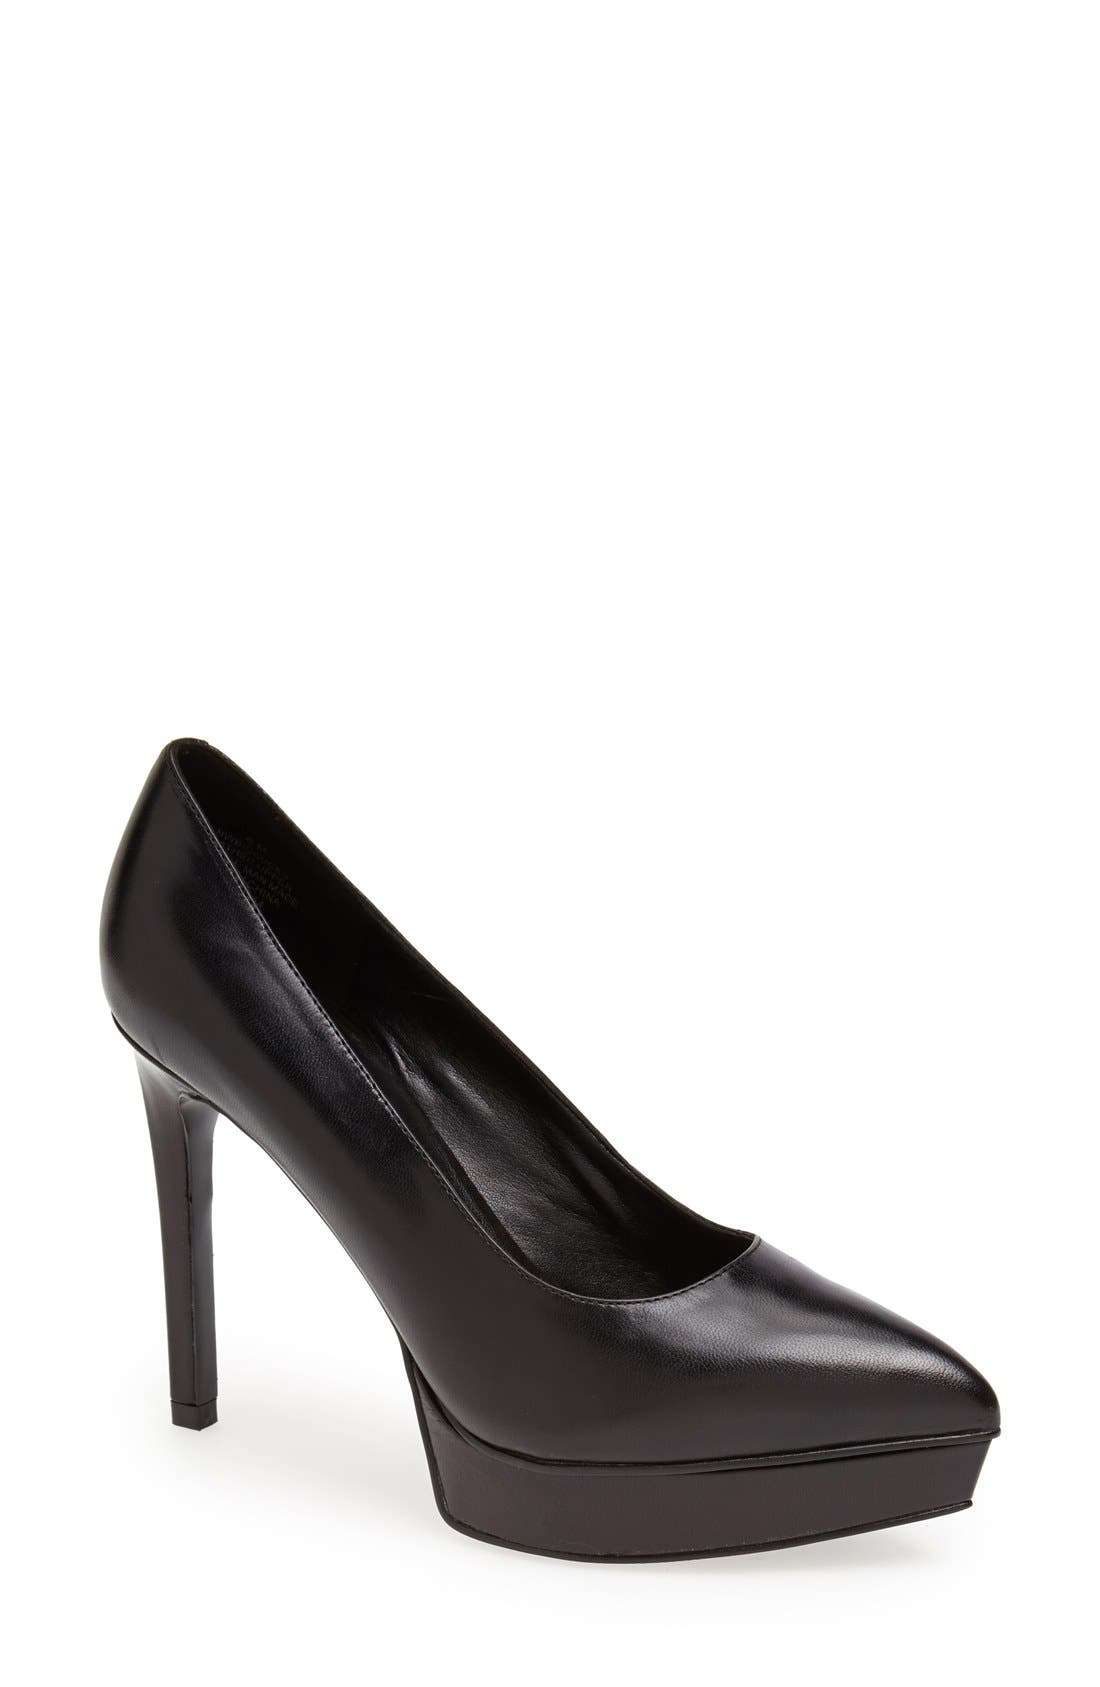 Main Image - Nine West 'Big Bucks' Pump (Women)